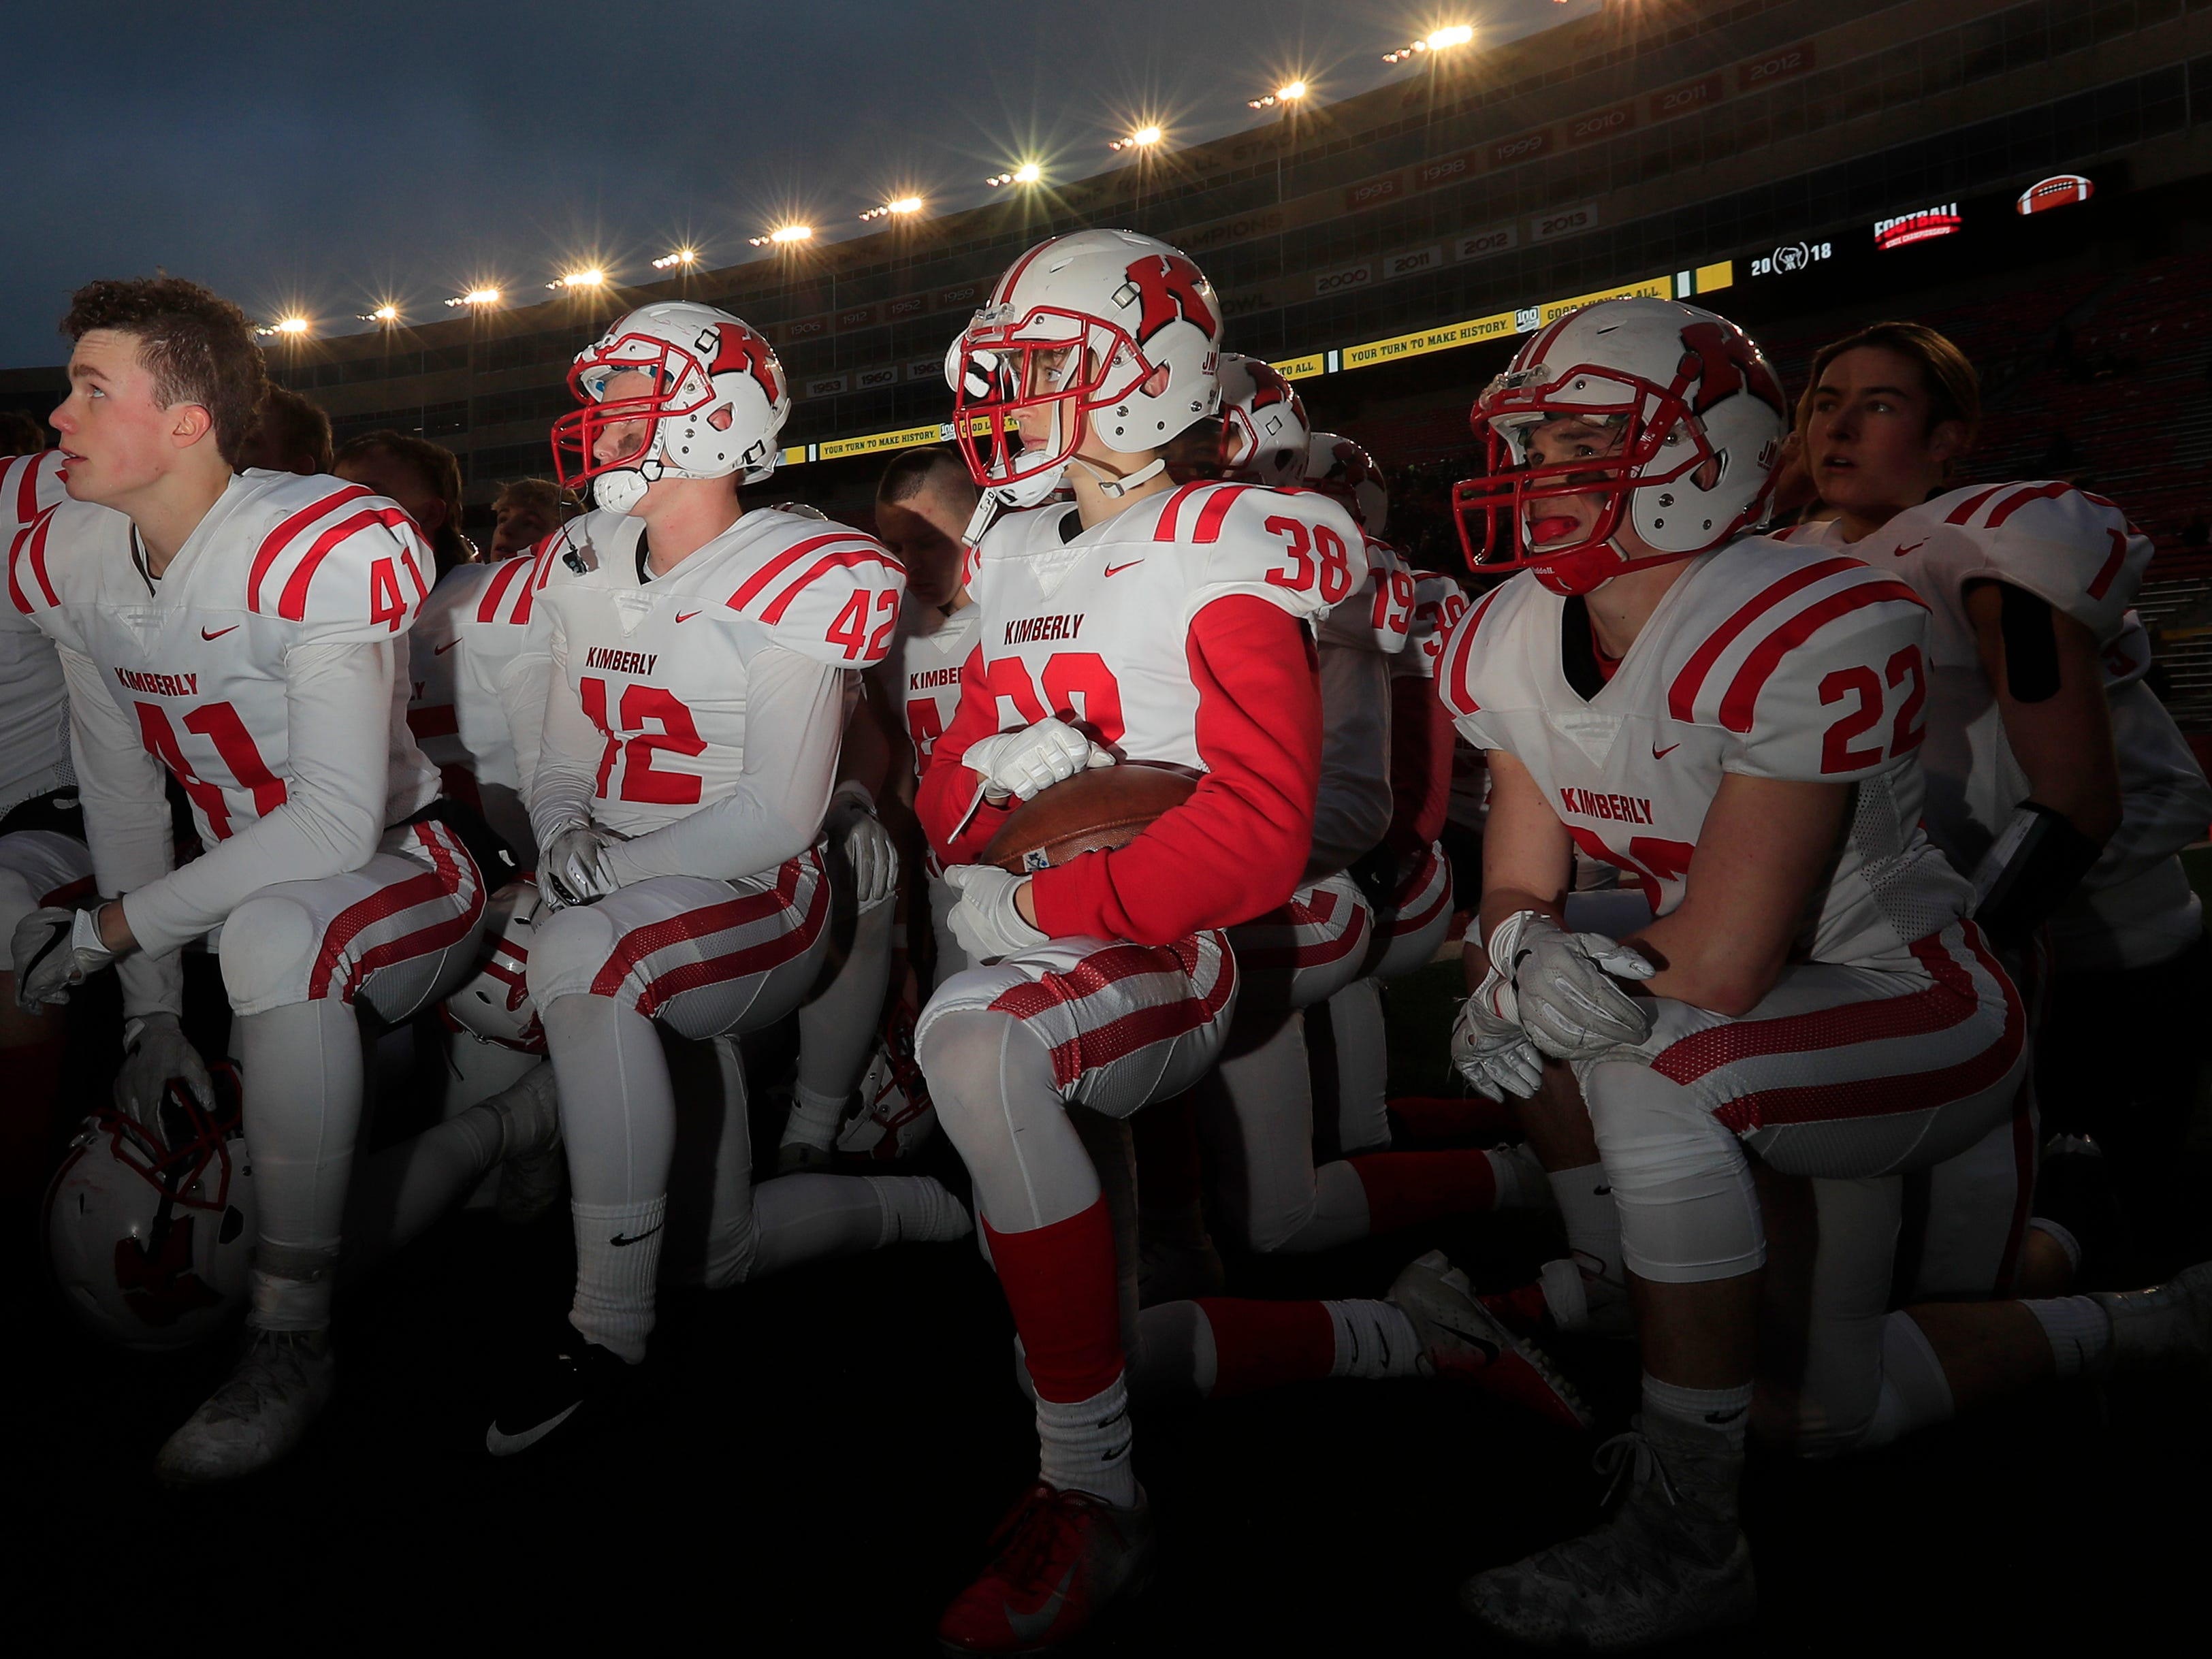 Kimberly players huddle before the WIAA Division 1 championship game at Camp Randall Stadium on Friday, November 16, 2018 in Madison, Wis.